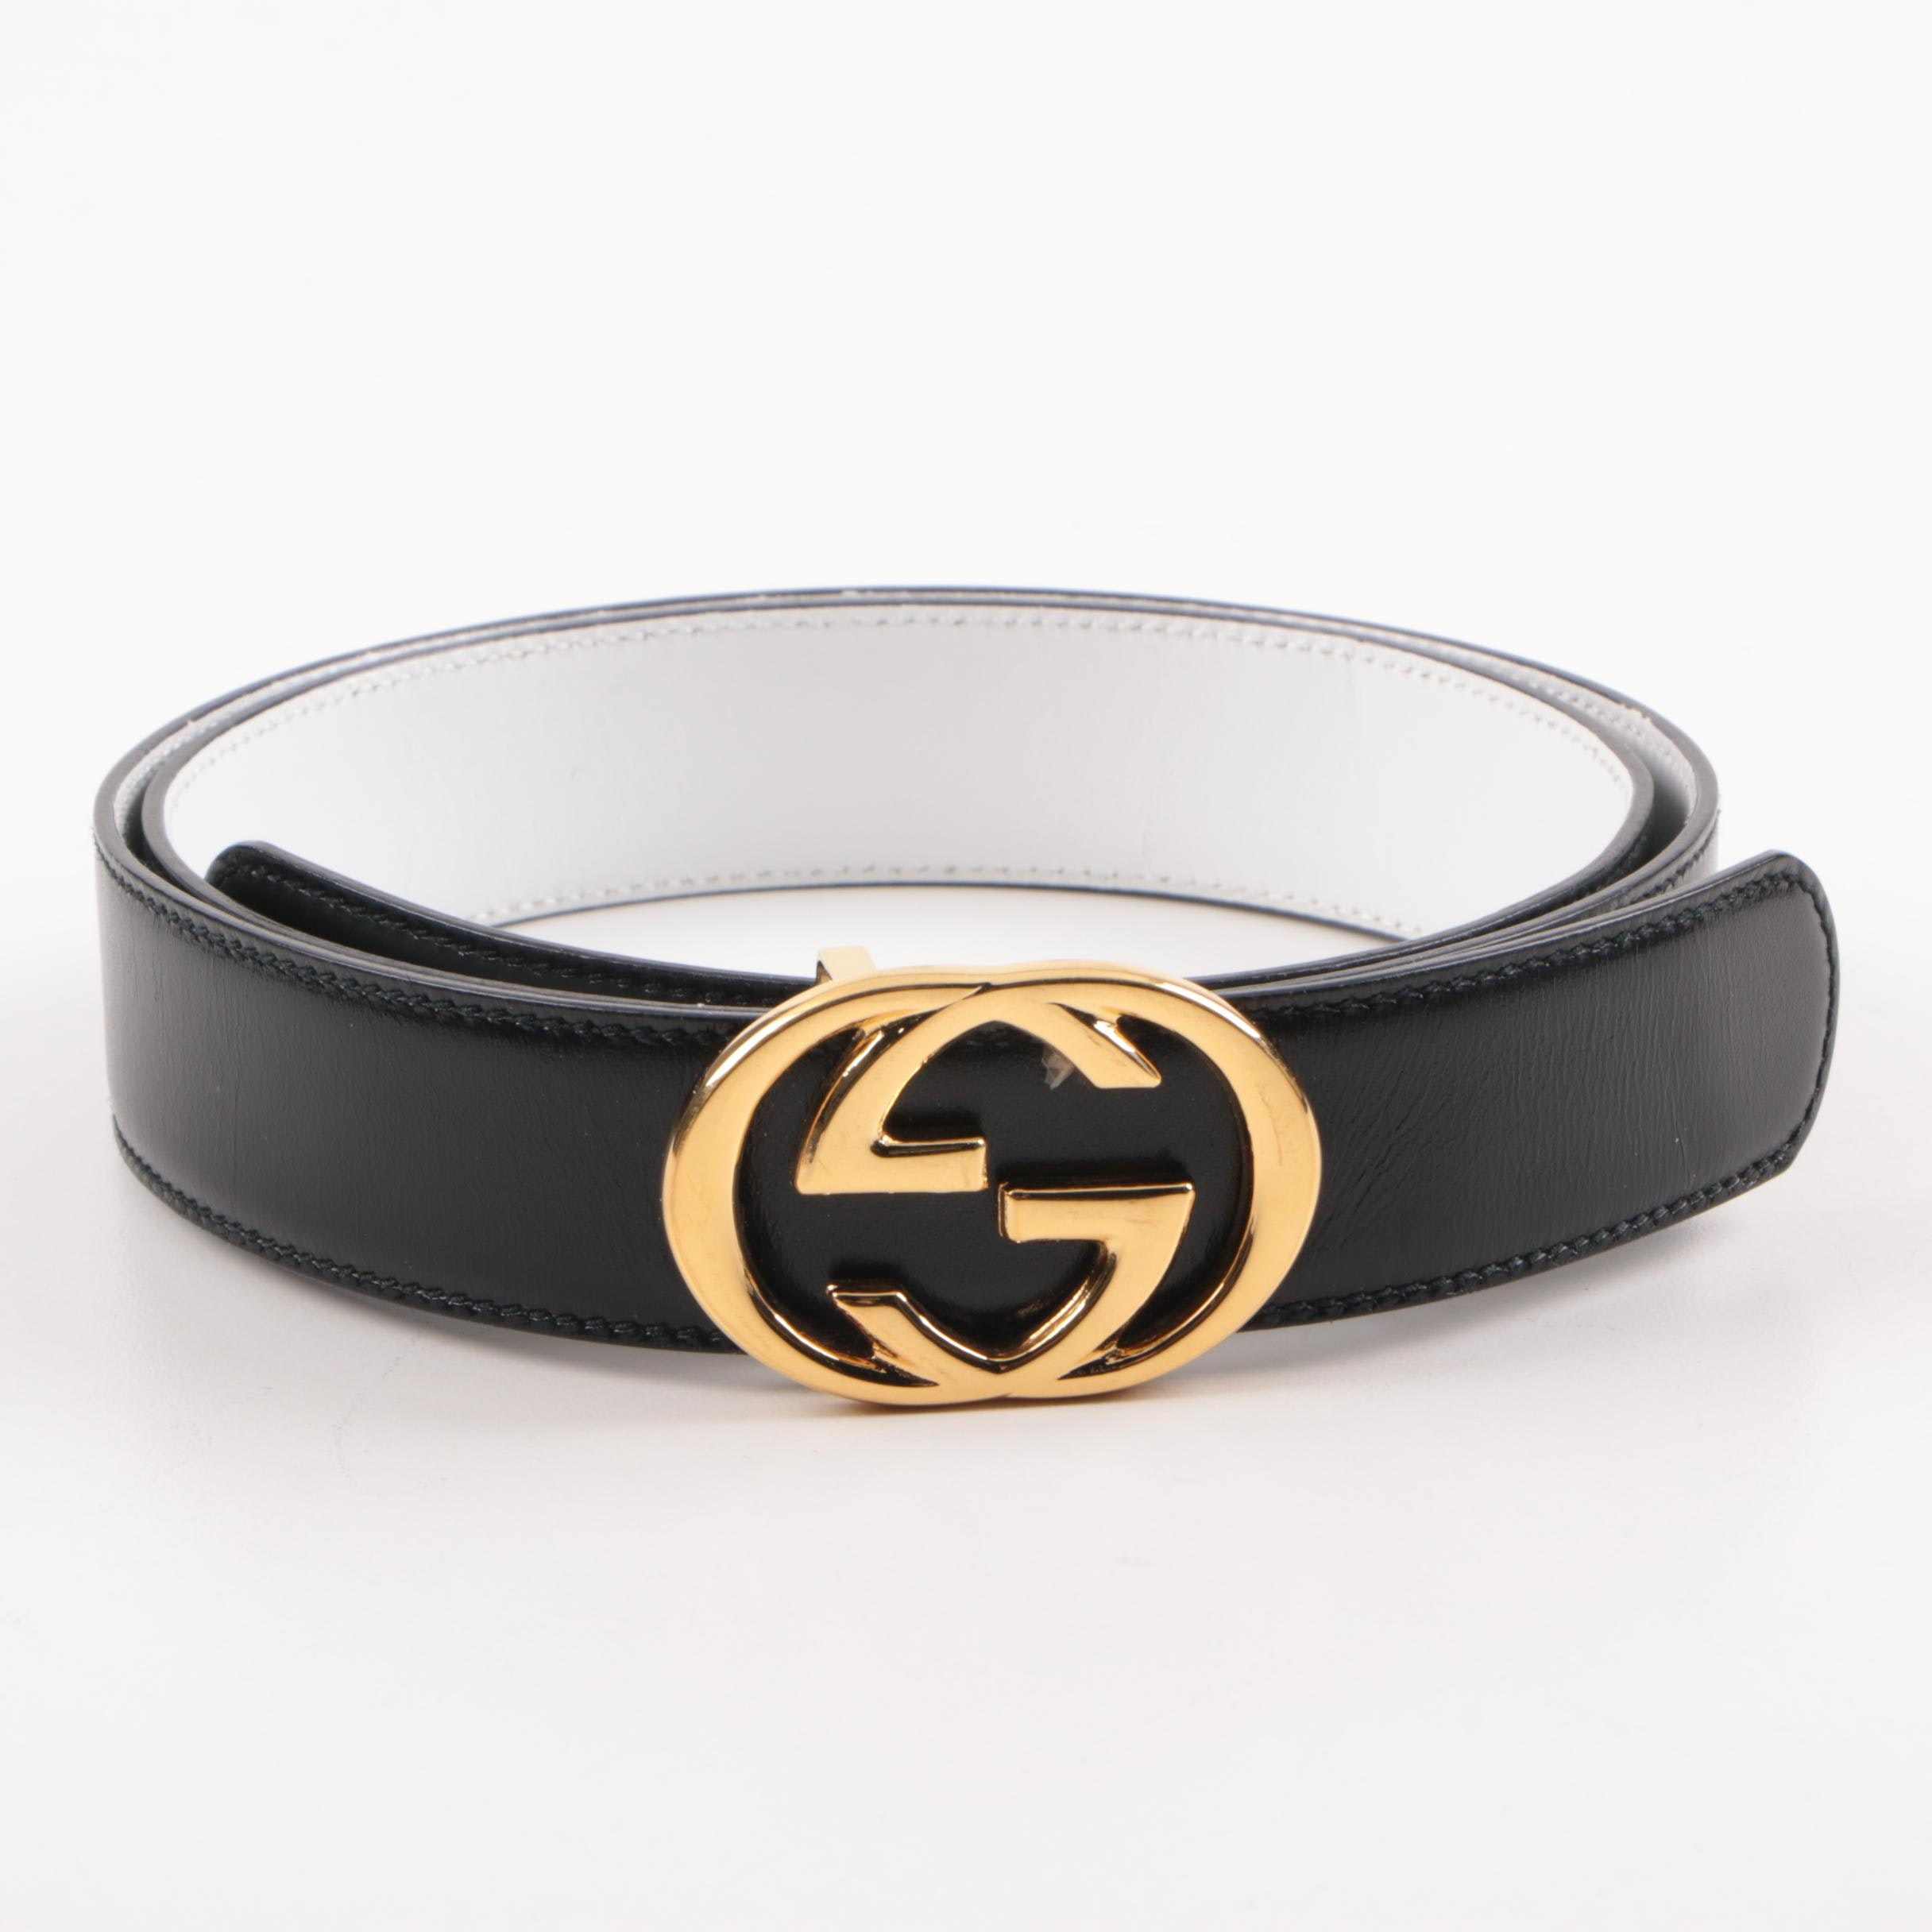 Gucci Black Leather Belt with Interlocking GG Buckle